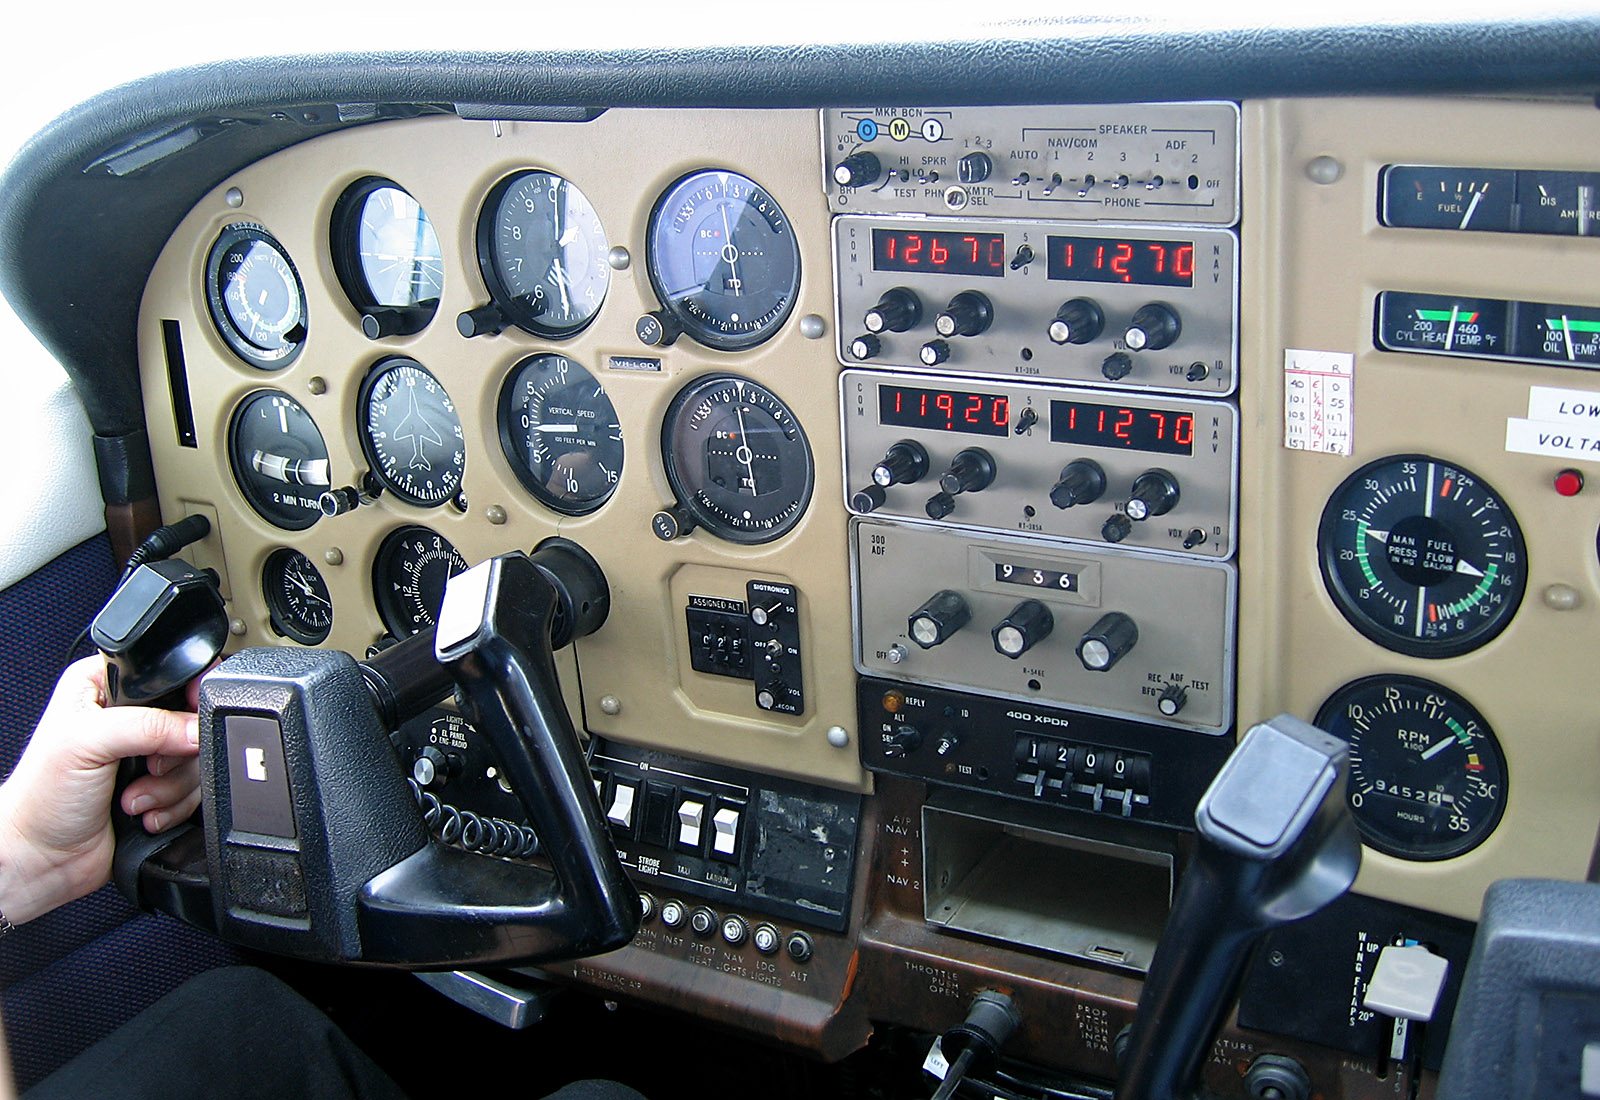 File:Instrument Panel of a Cessna in Tasmania, jjron, 9 4